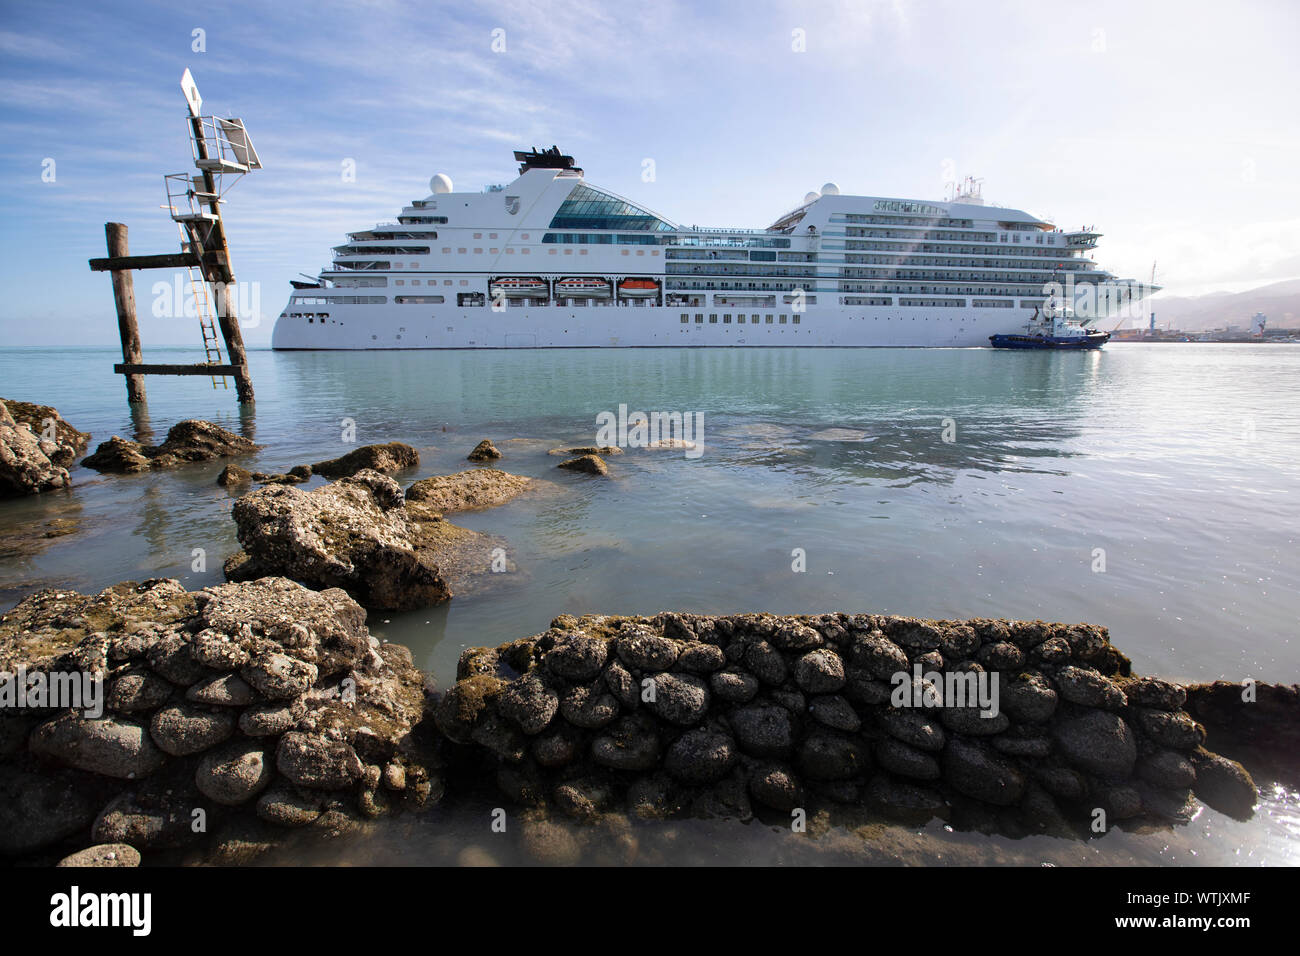 Picture by Tim Cuff - 25 January 2019 - Arrival of cruise ship Seabourn Encore into Port Nelson, New Zealand Stock Photo